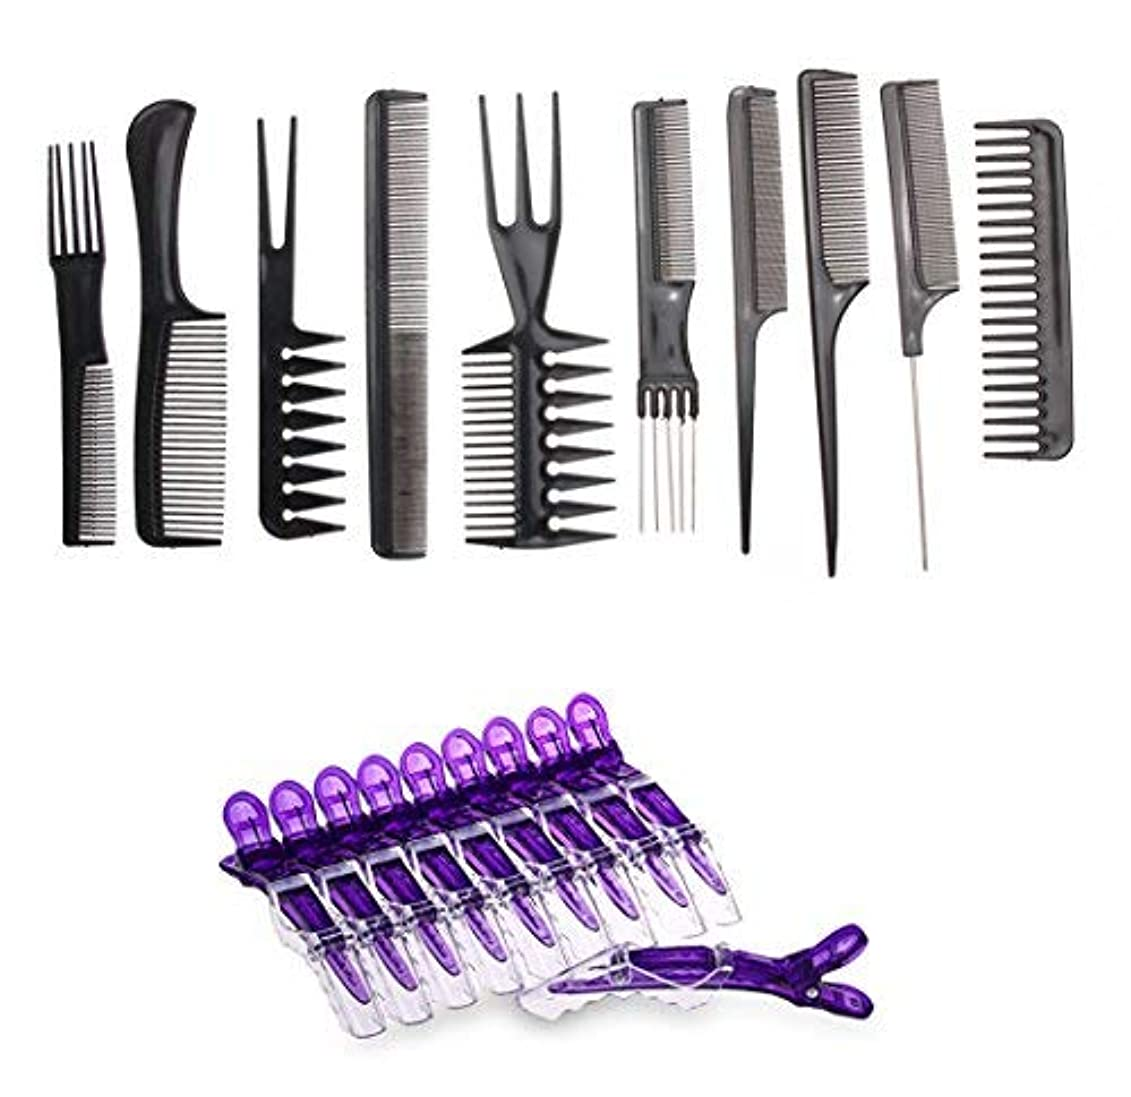 応じる慢光沢のあるLe Fu Li 10pcs/Set Professional Hair Brush Comb Salon Barber Anti-static Hair Combs Hairbrush Hairdressing Combs...